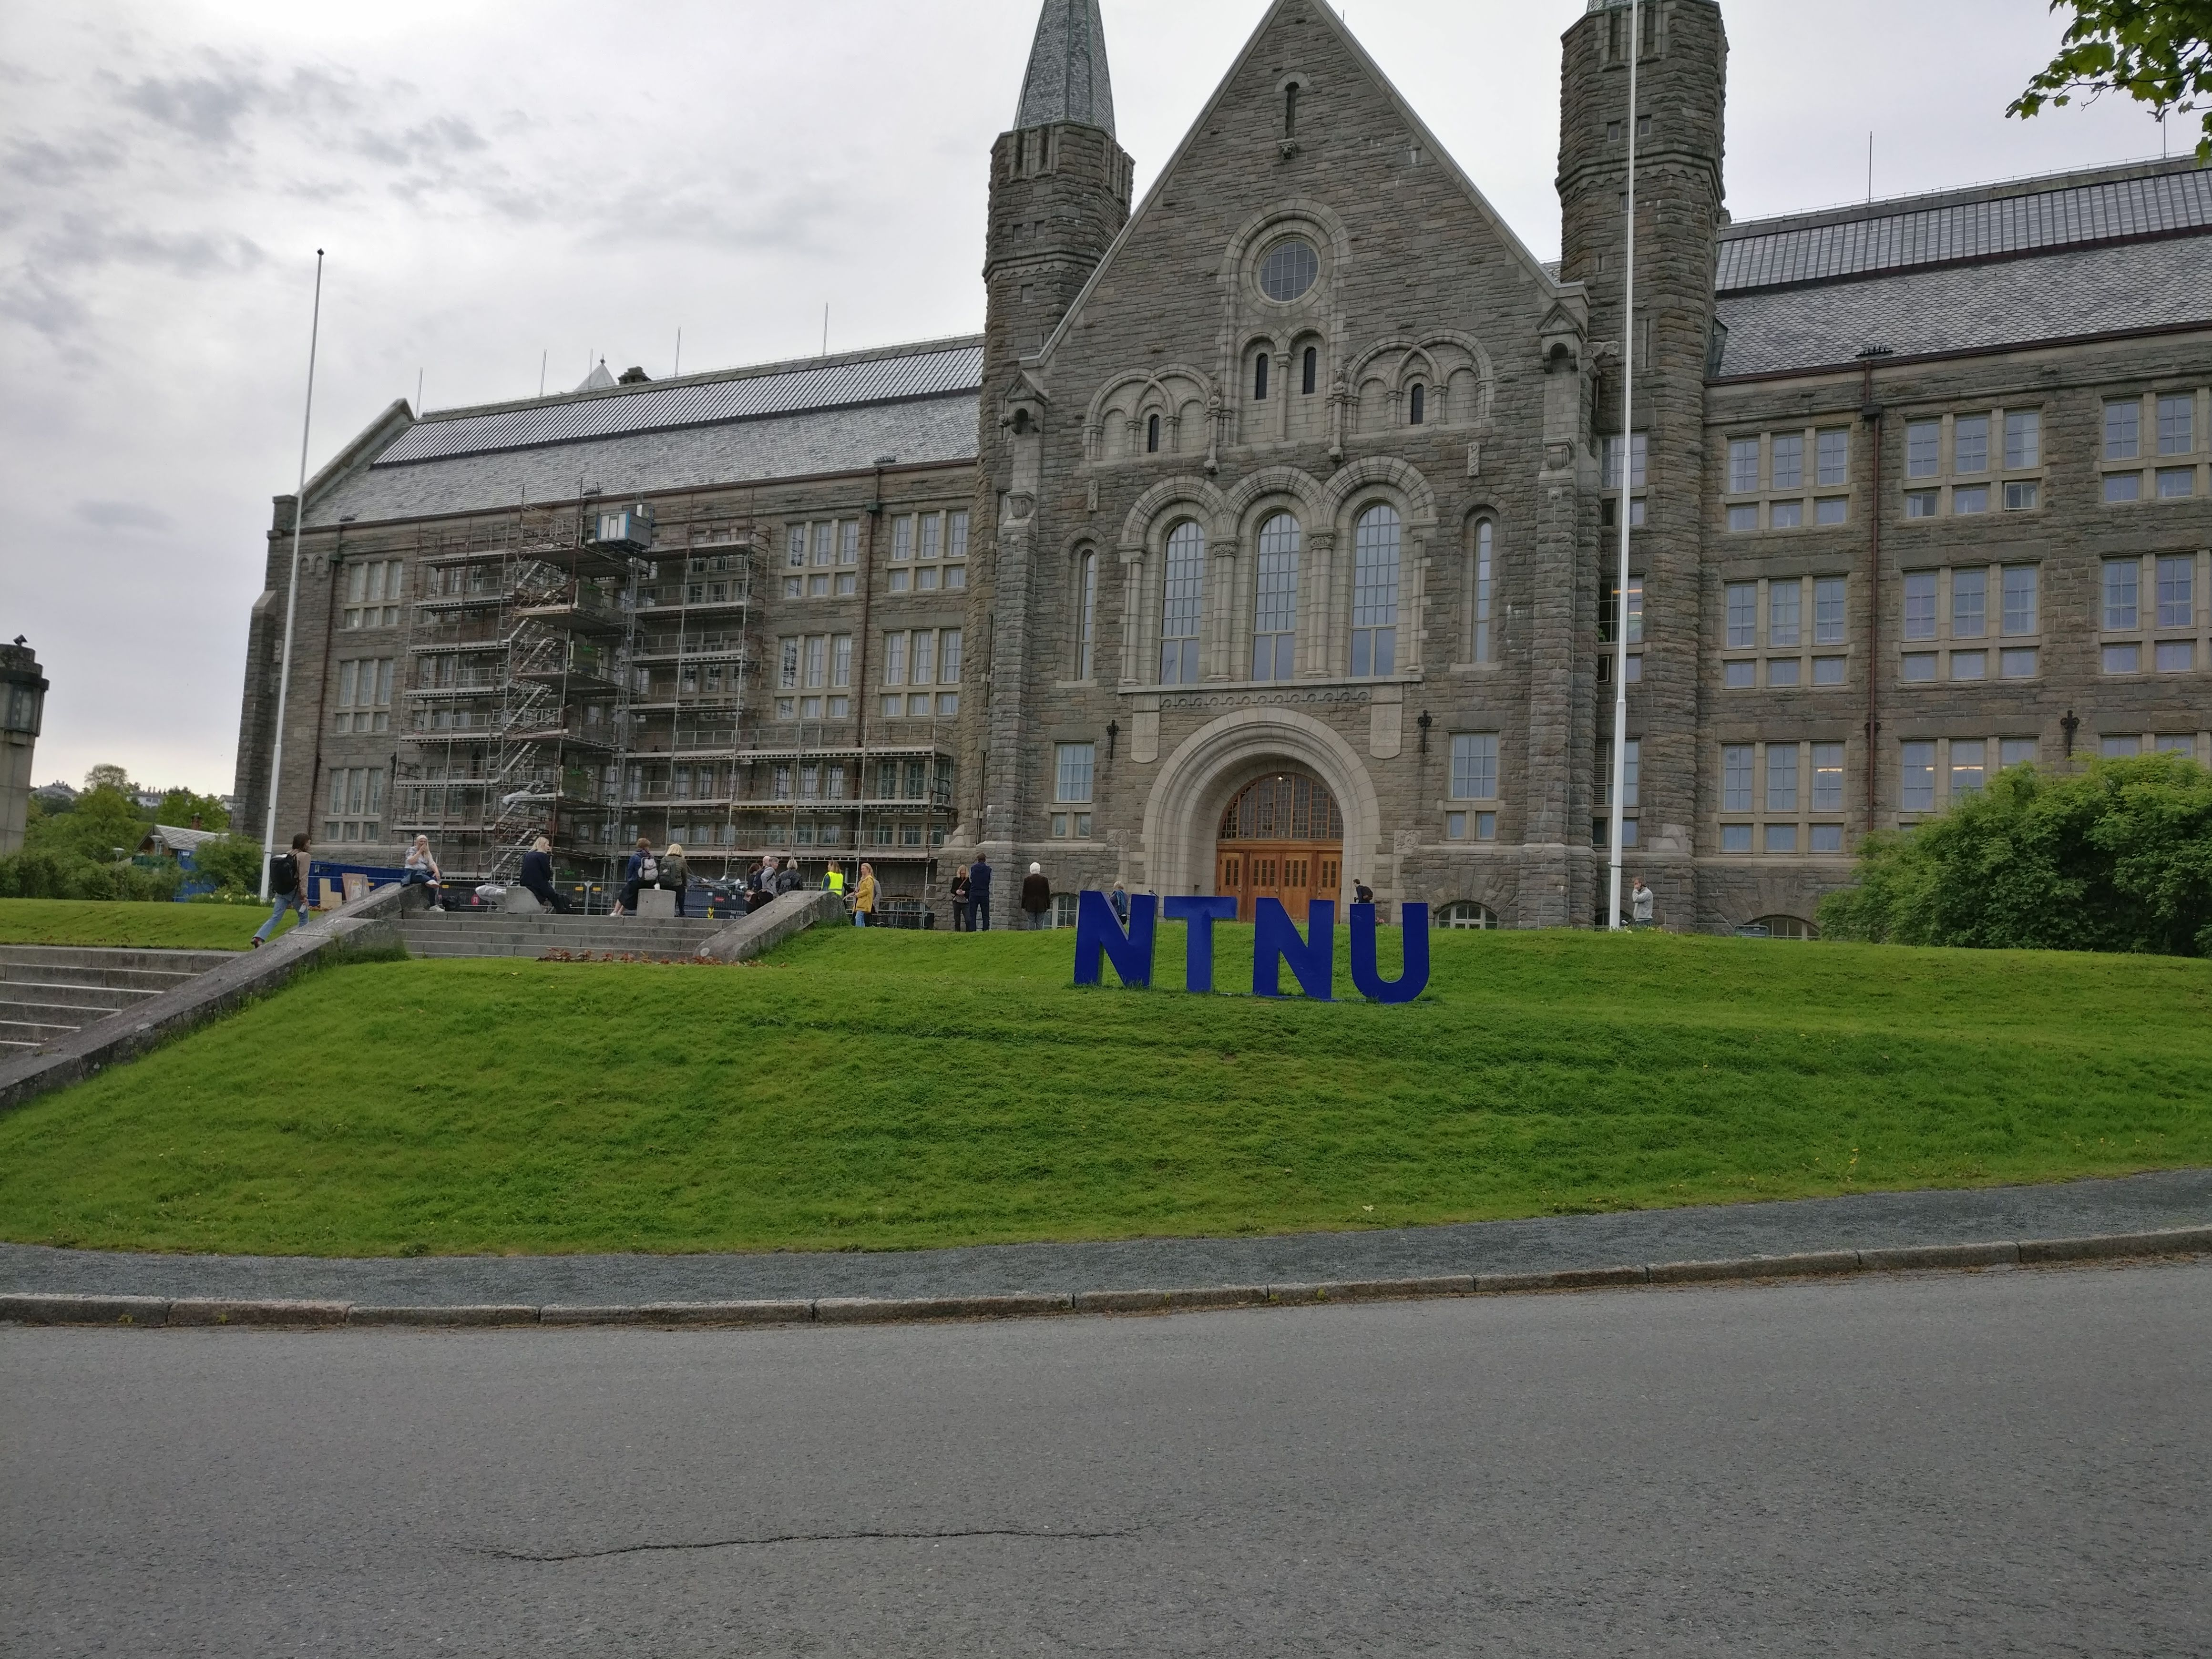 Colour photograph of the front of an NTNU (Norwegian University of Science and Technology) building